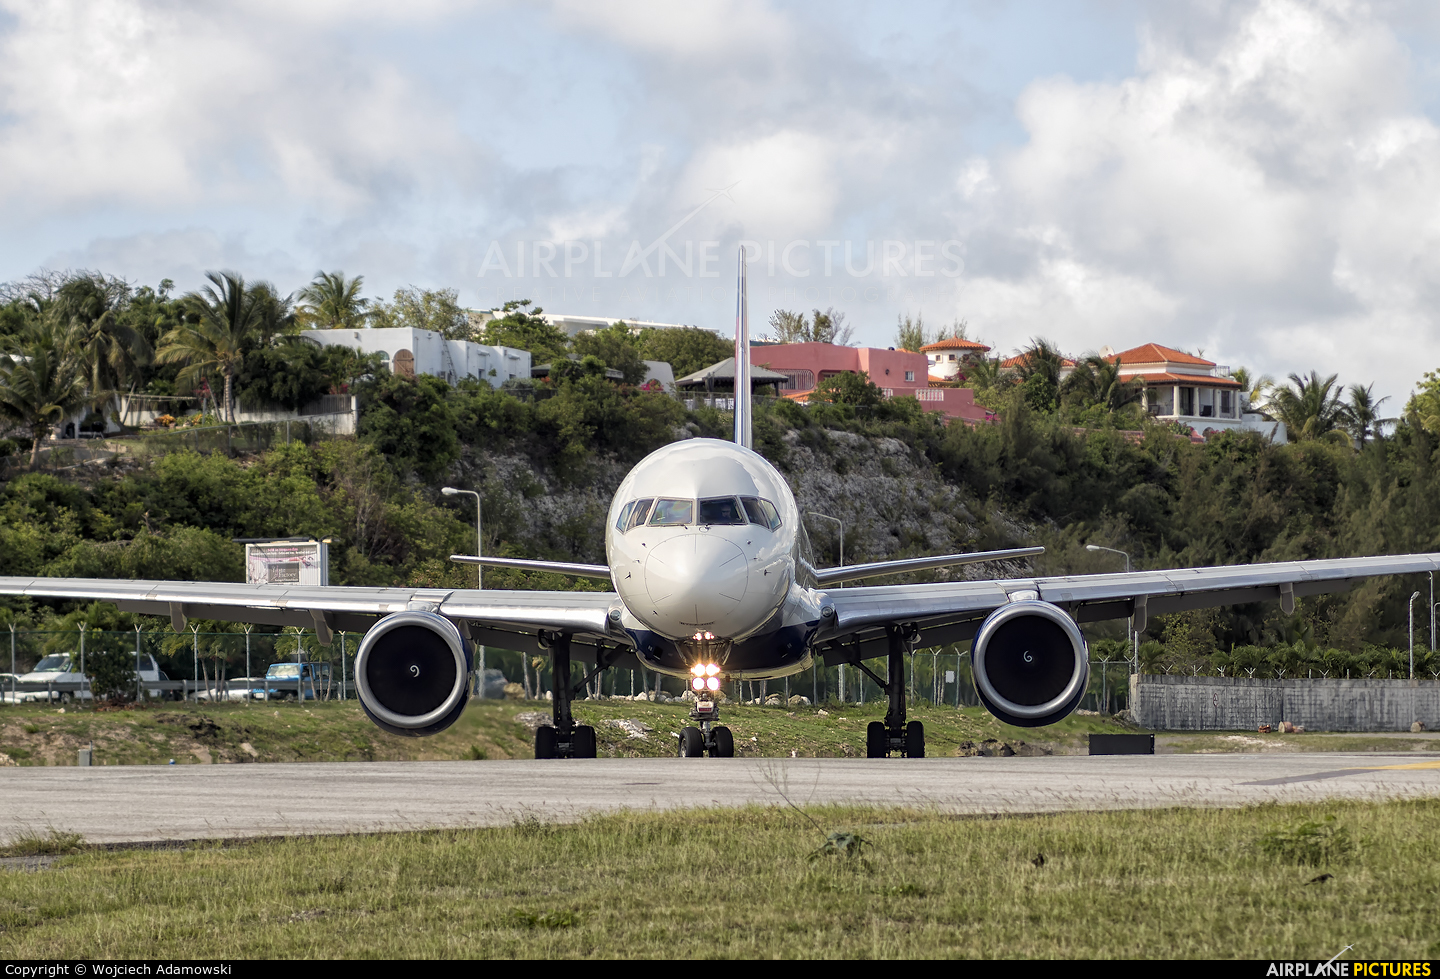 Delta Air Lines N6714Q aircraft at Sint Maarten - Princess Juliana Intl